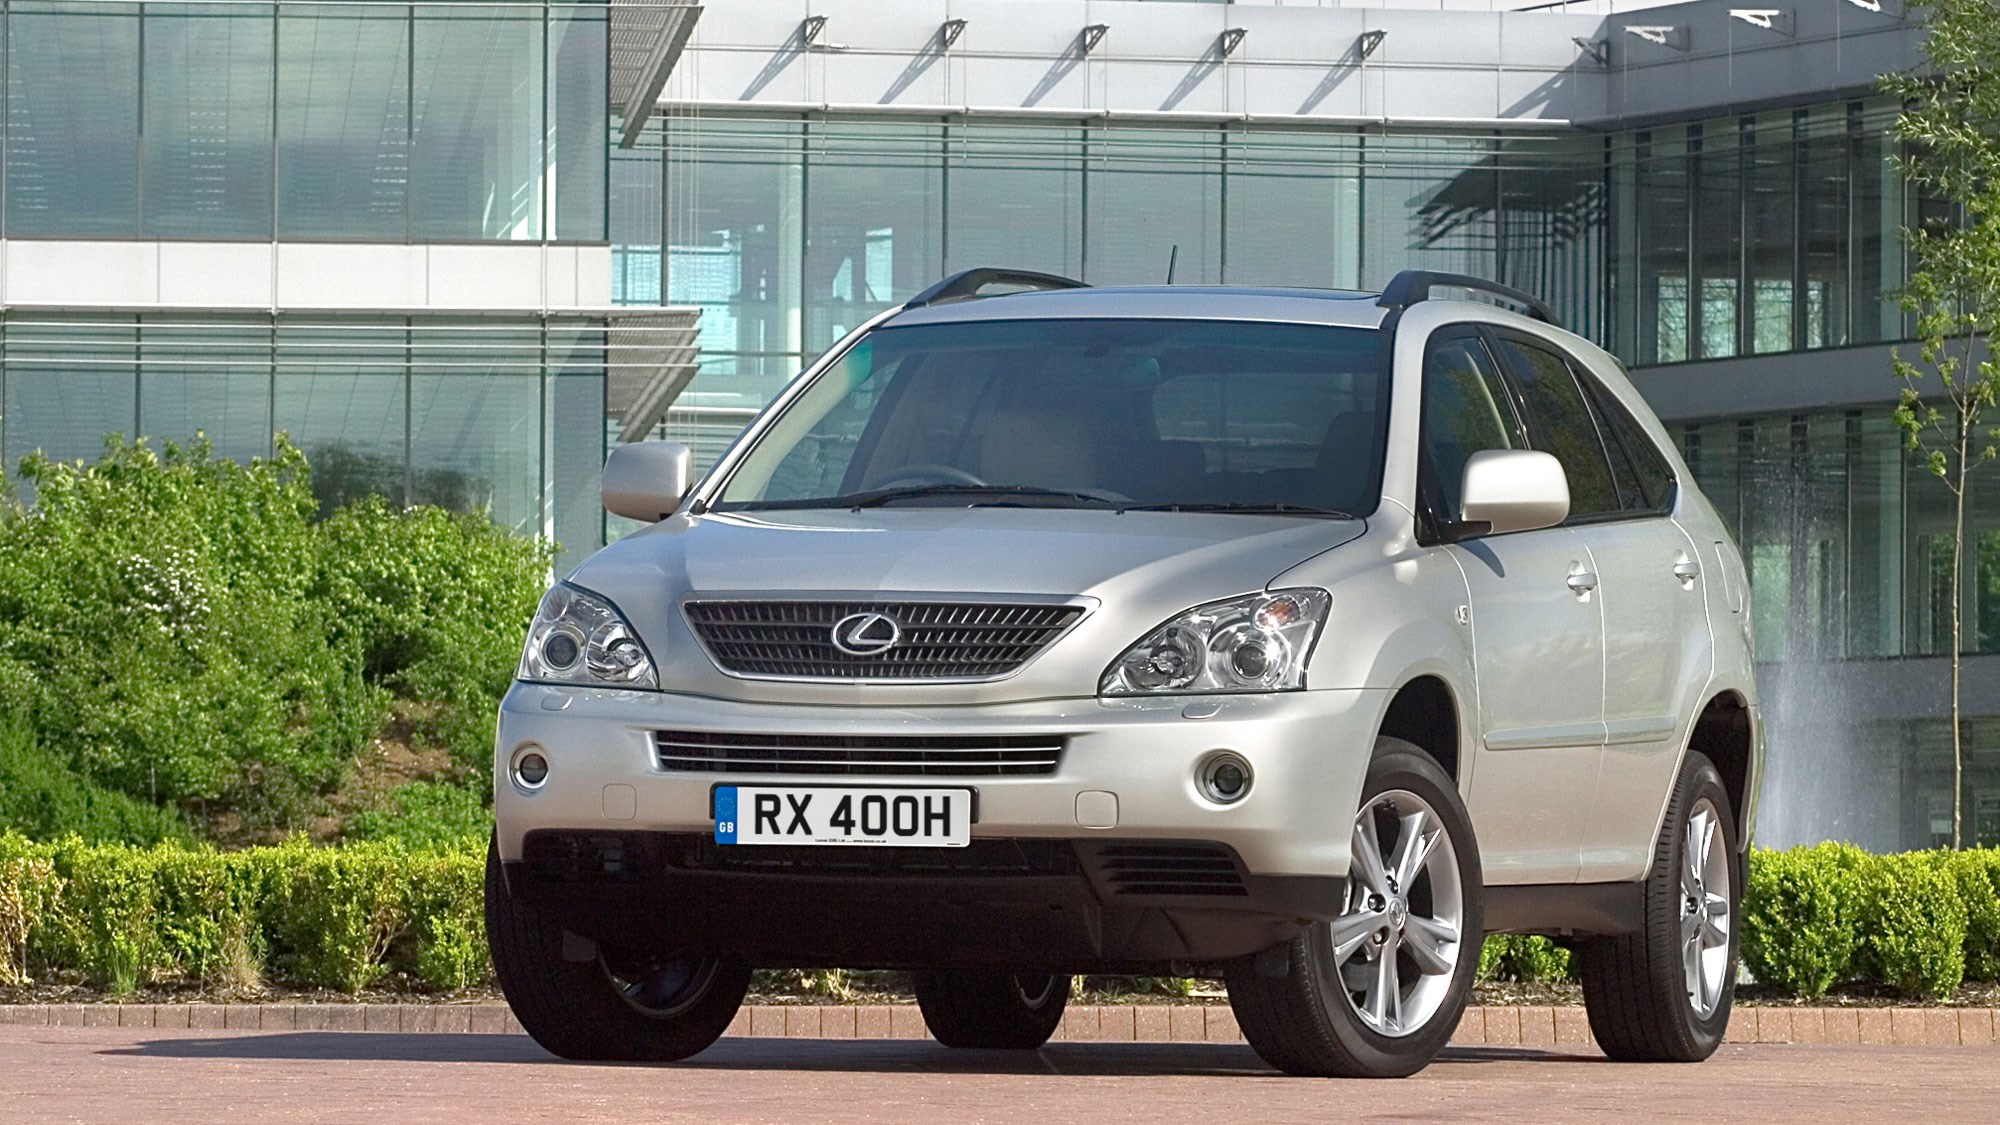 Lexus RX400h hybrid SUV review - front view, silver